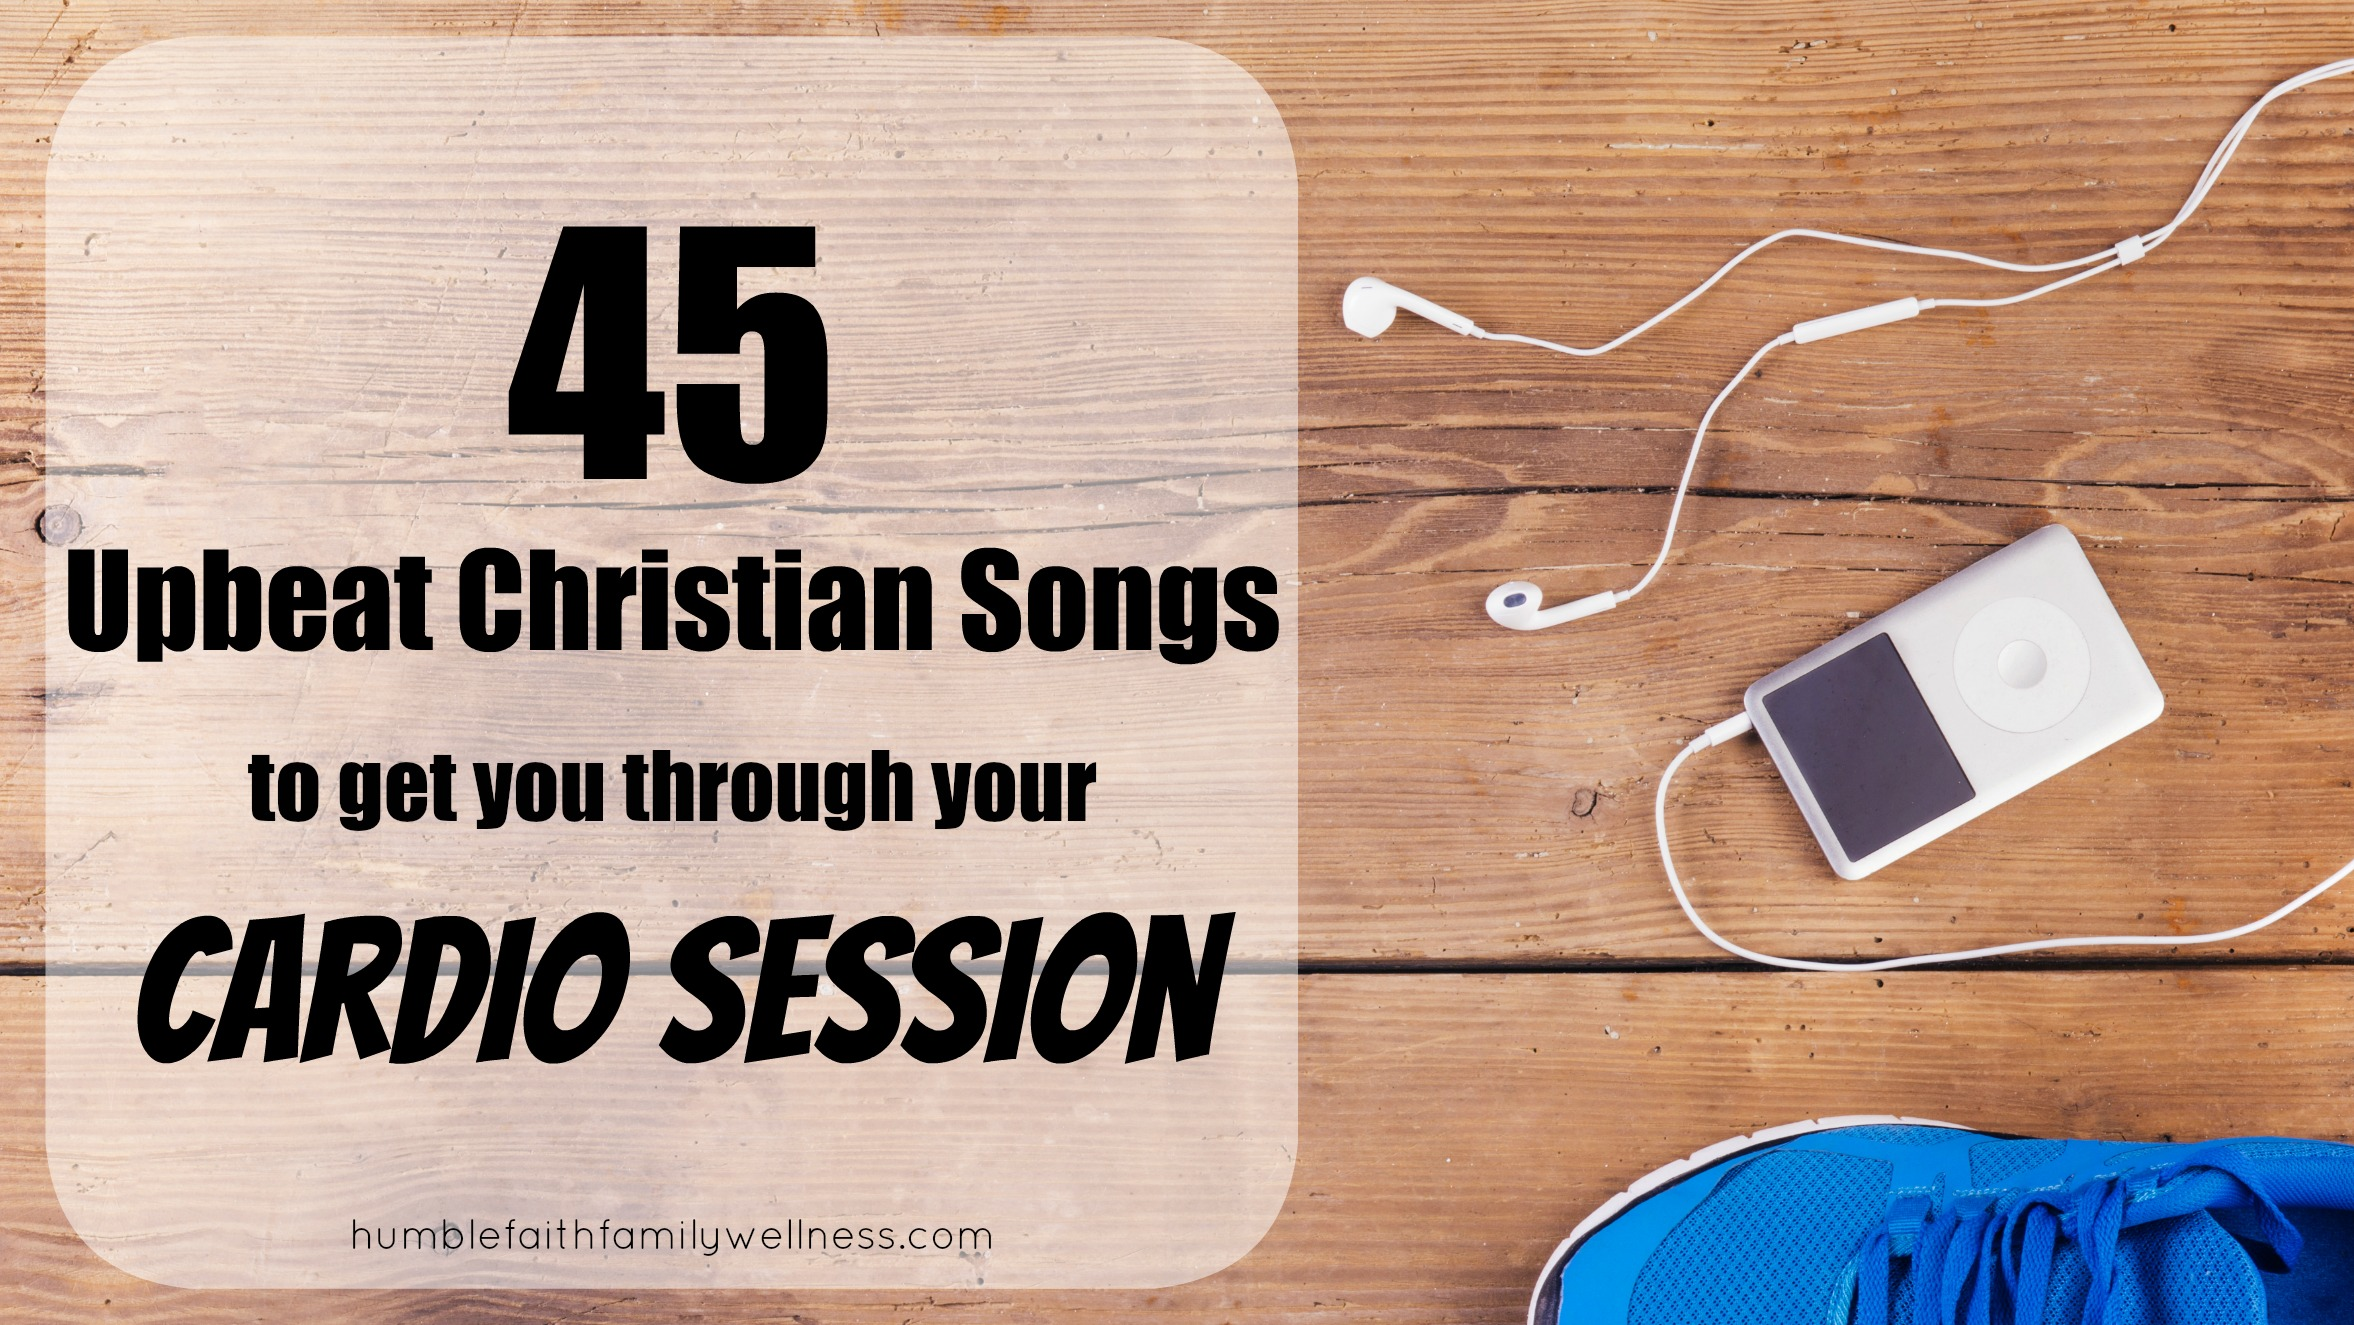 45 Upbeat Christian Songs to get you through your Cardio Session